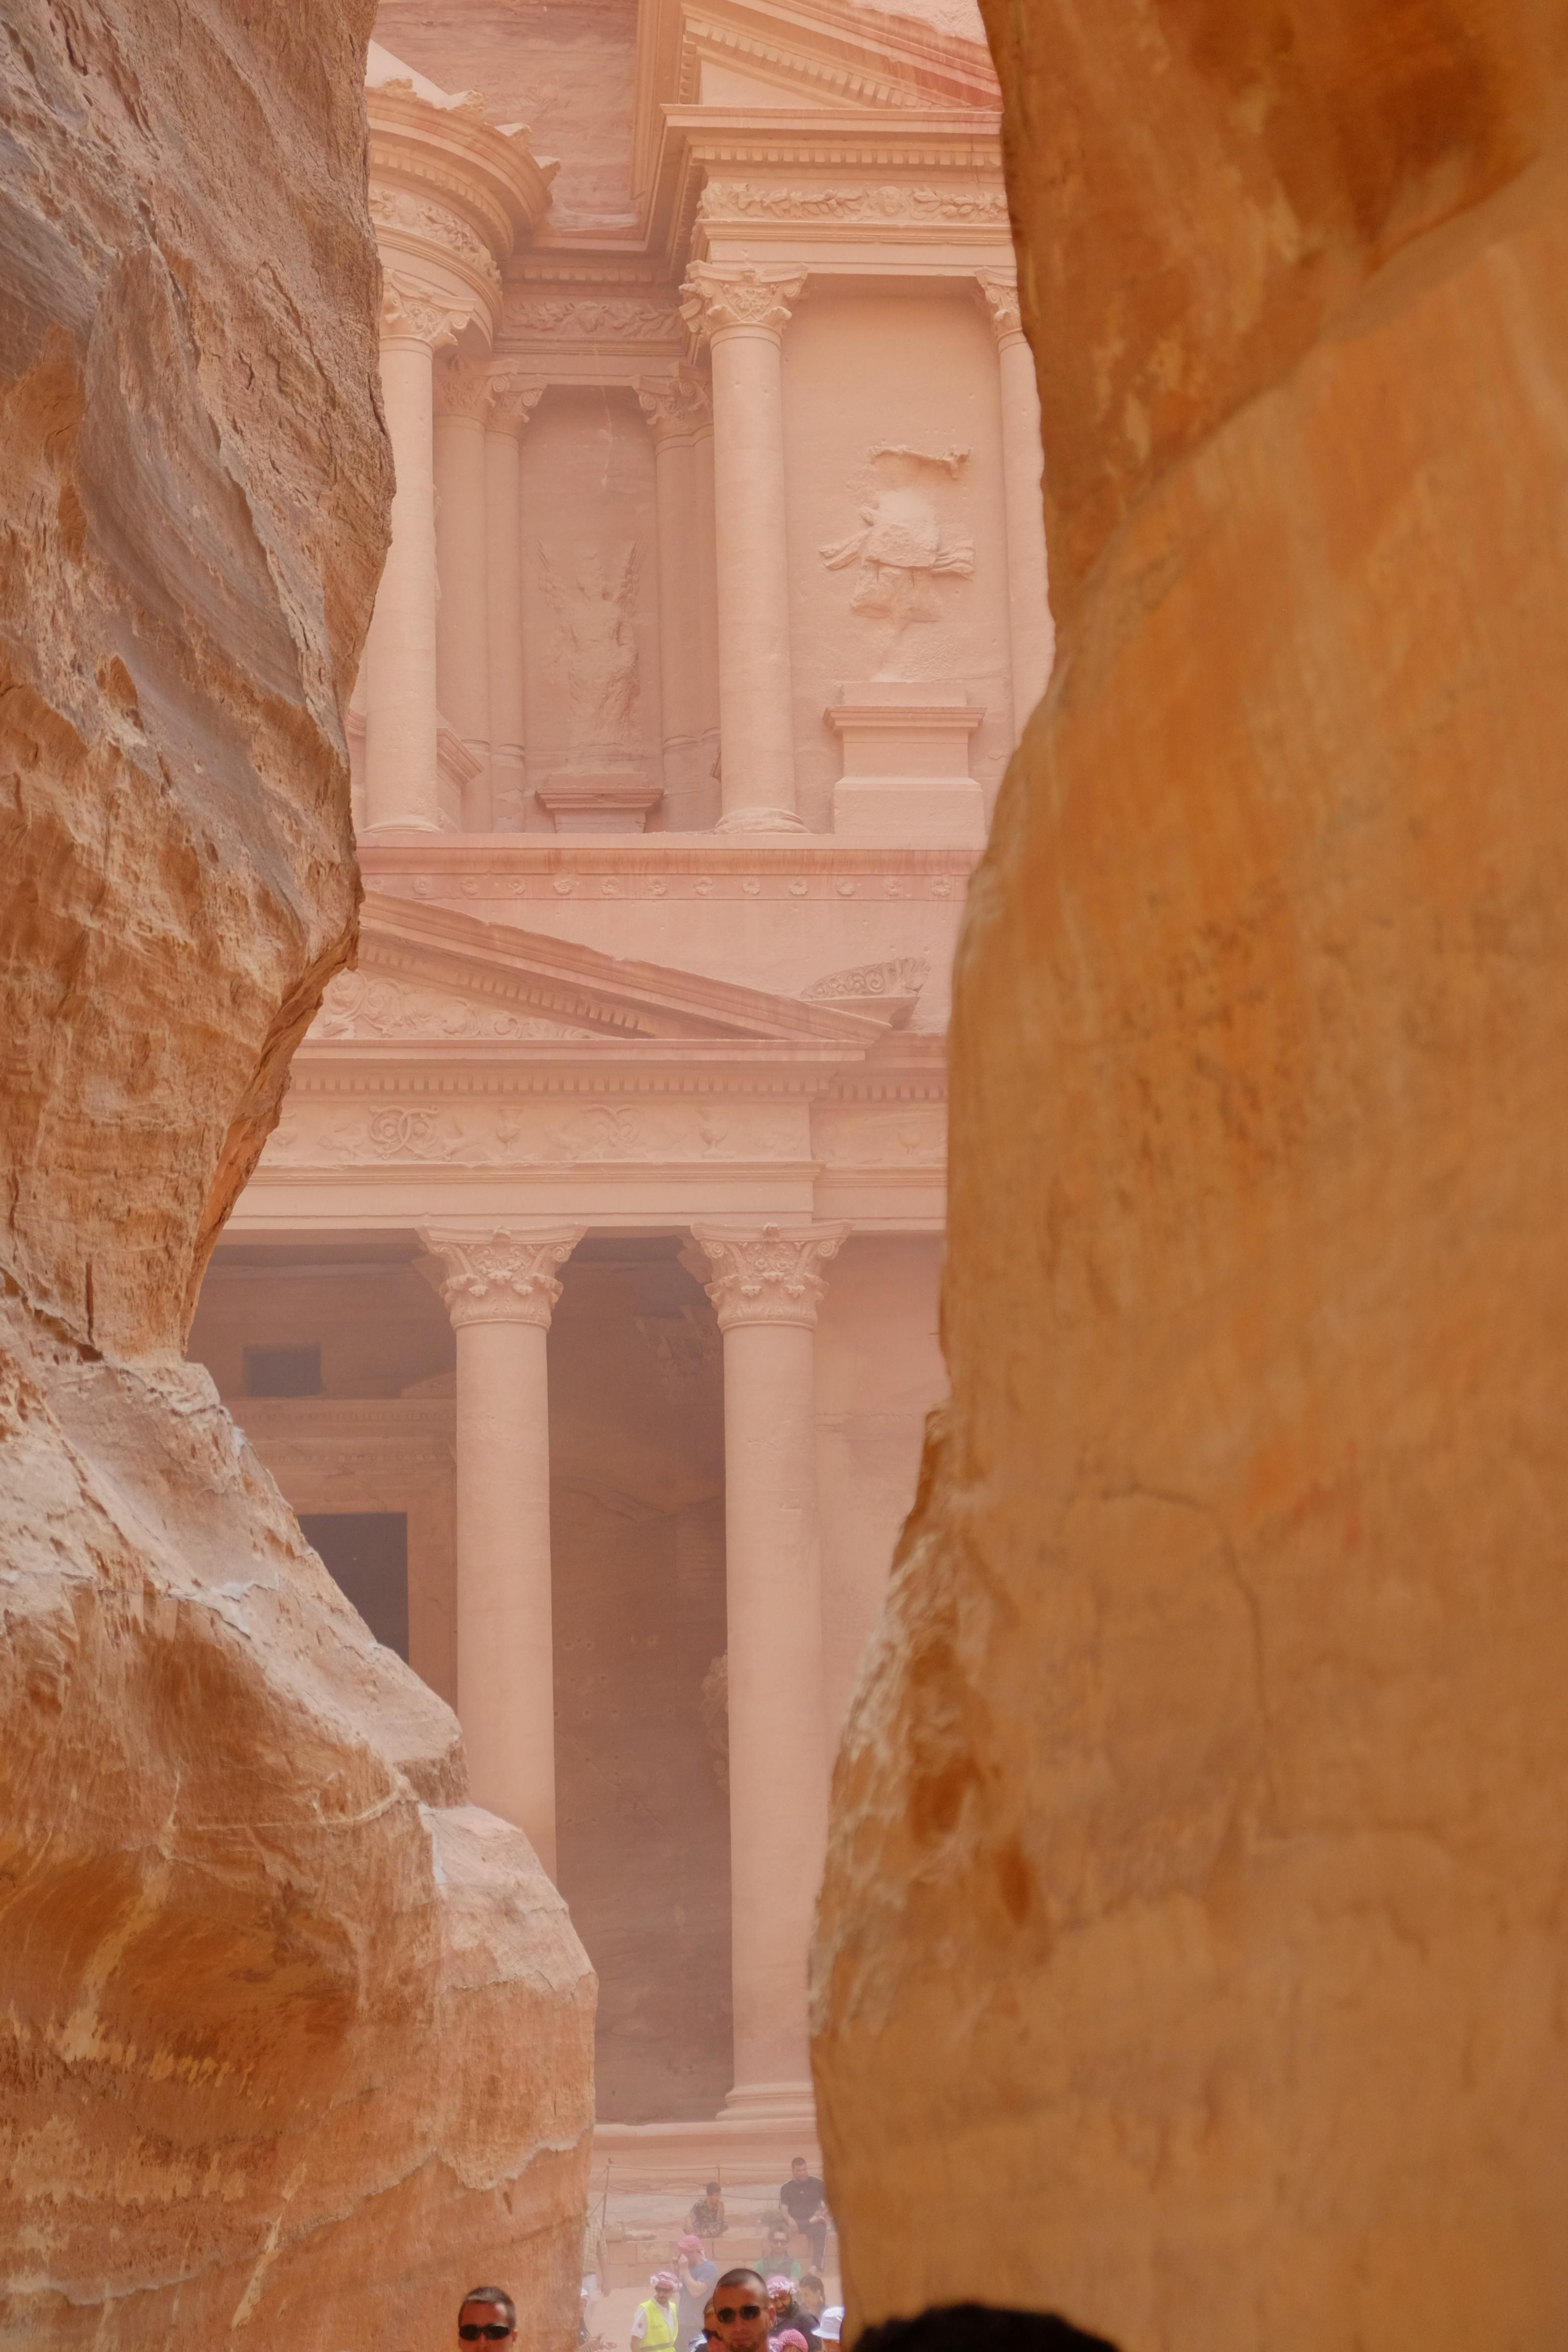 If you are ever in or near Jordan make sure to visit Petra! Took this with my XT1.